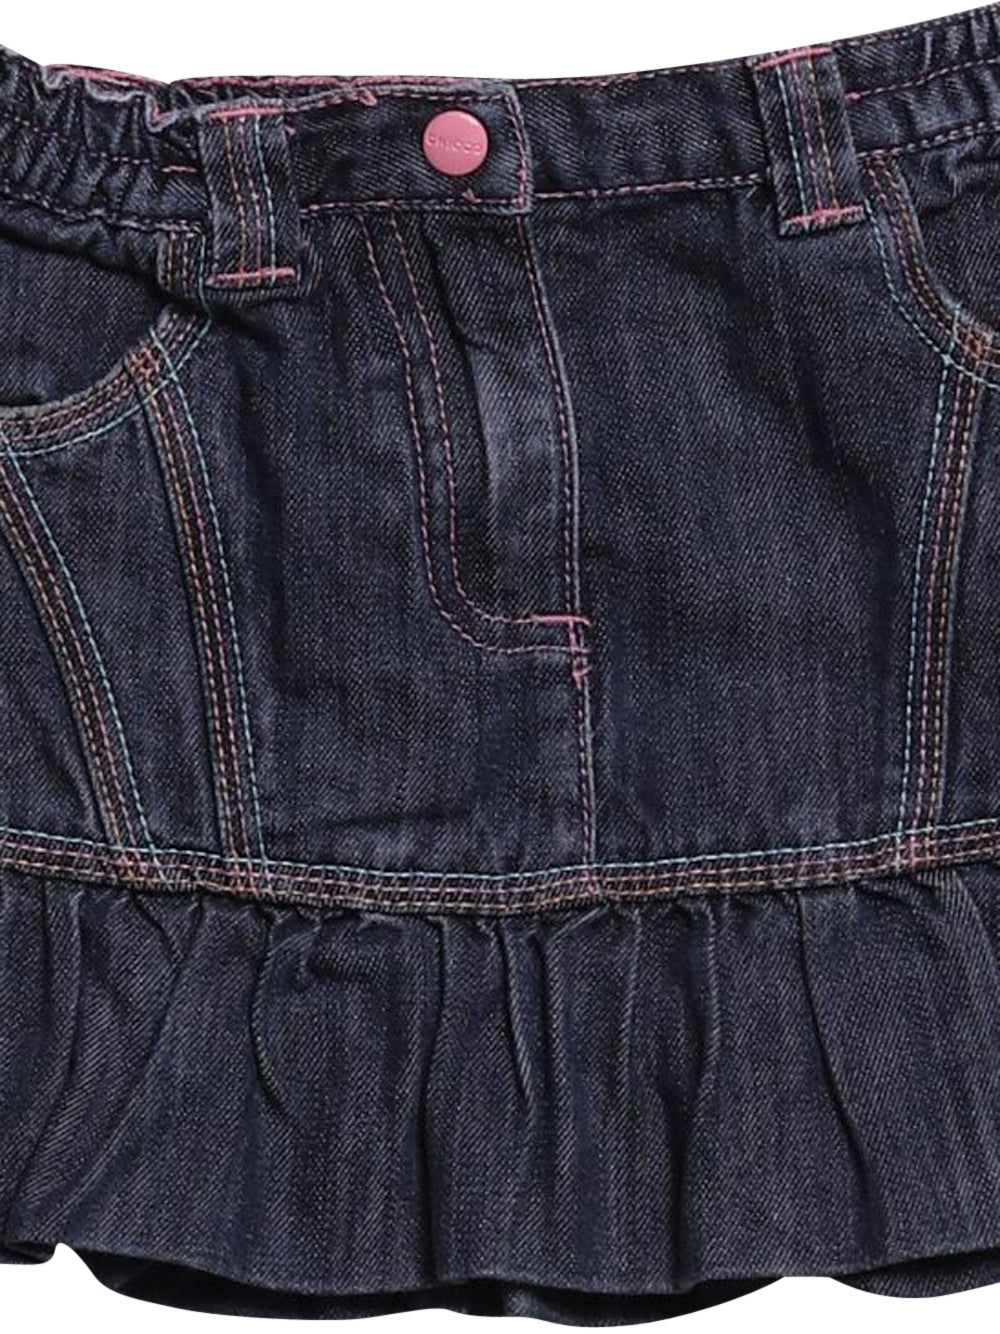 Detail photo of Preloved Chicco Blue Girl's skirt - size 18-24 mths